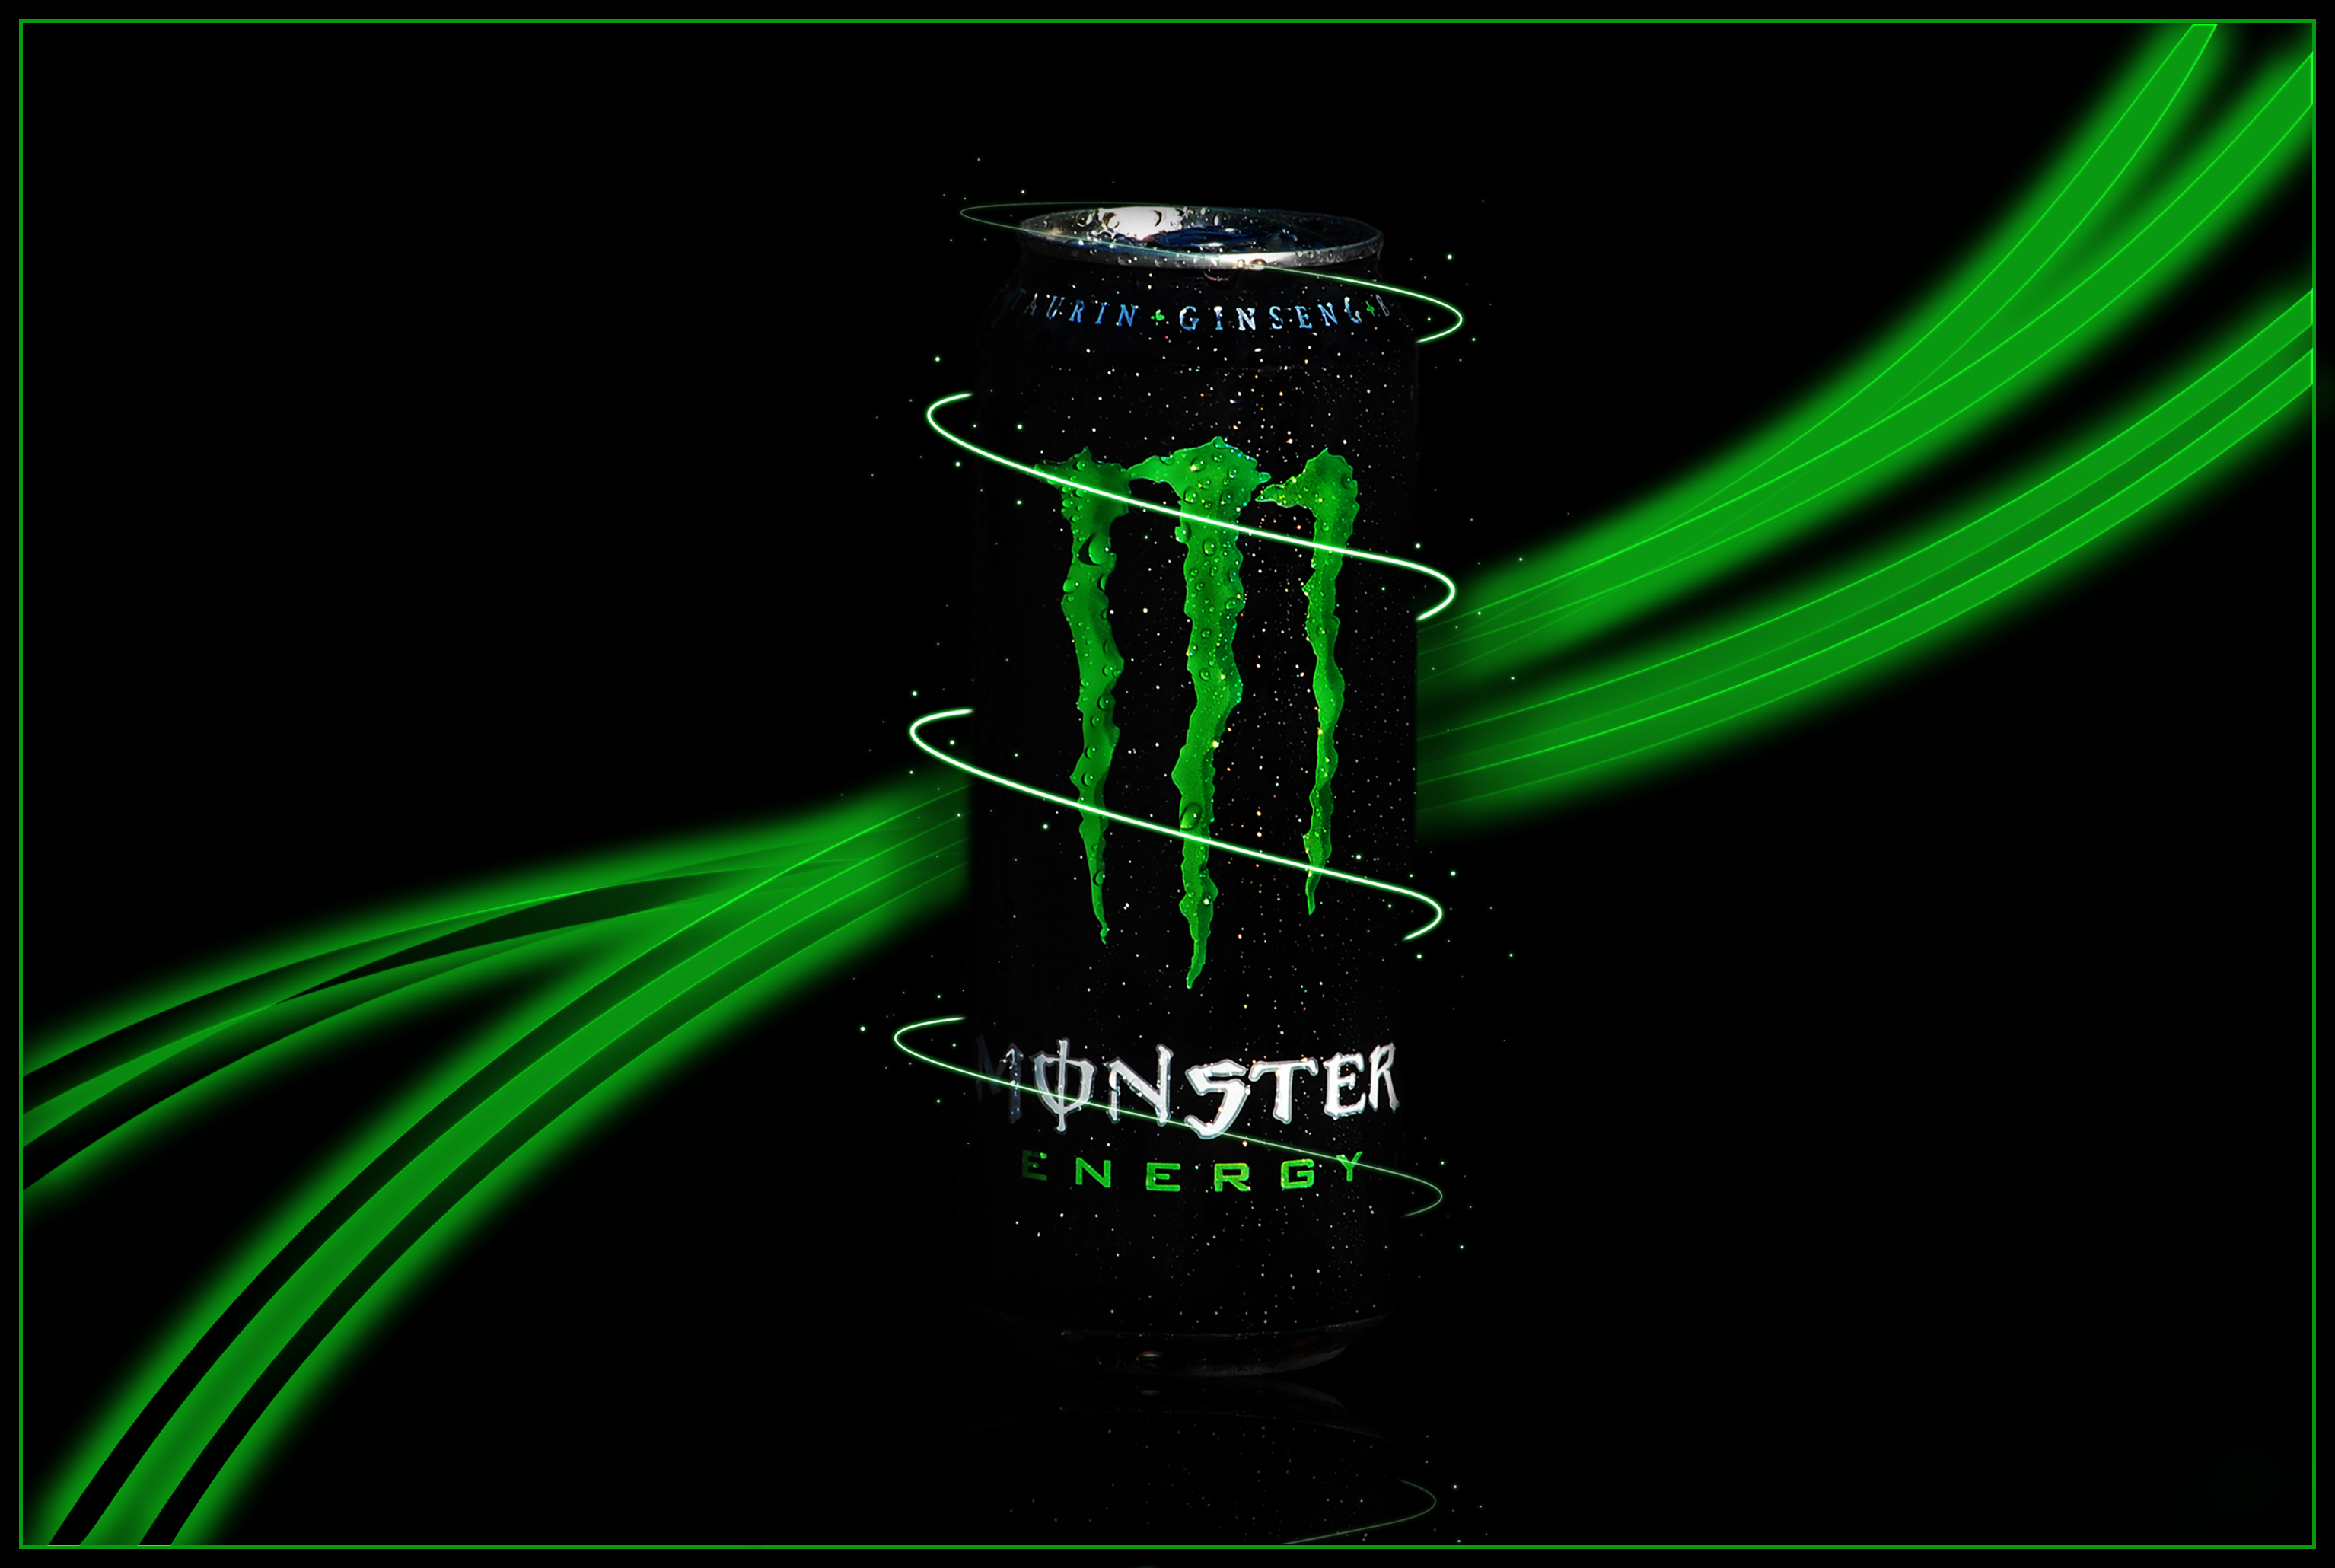 Desktop Monster Energy HD Wallpaper 3068x2060